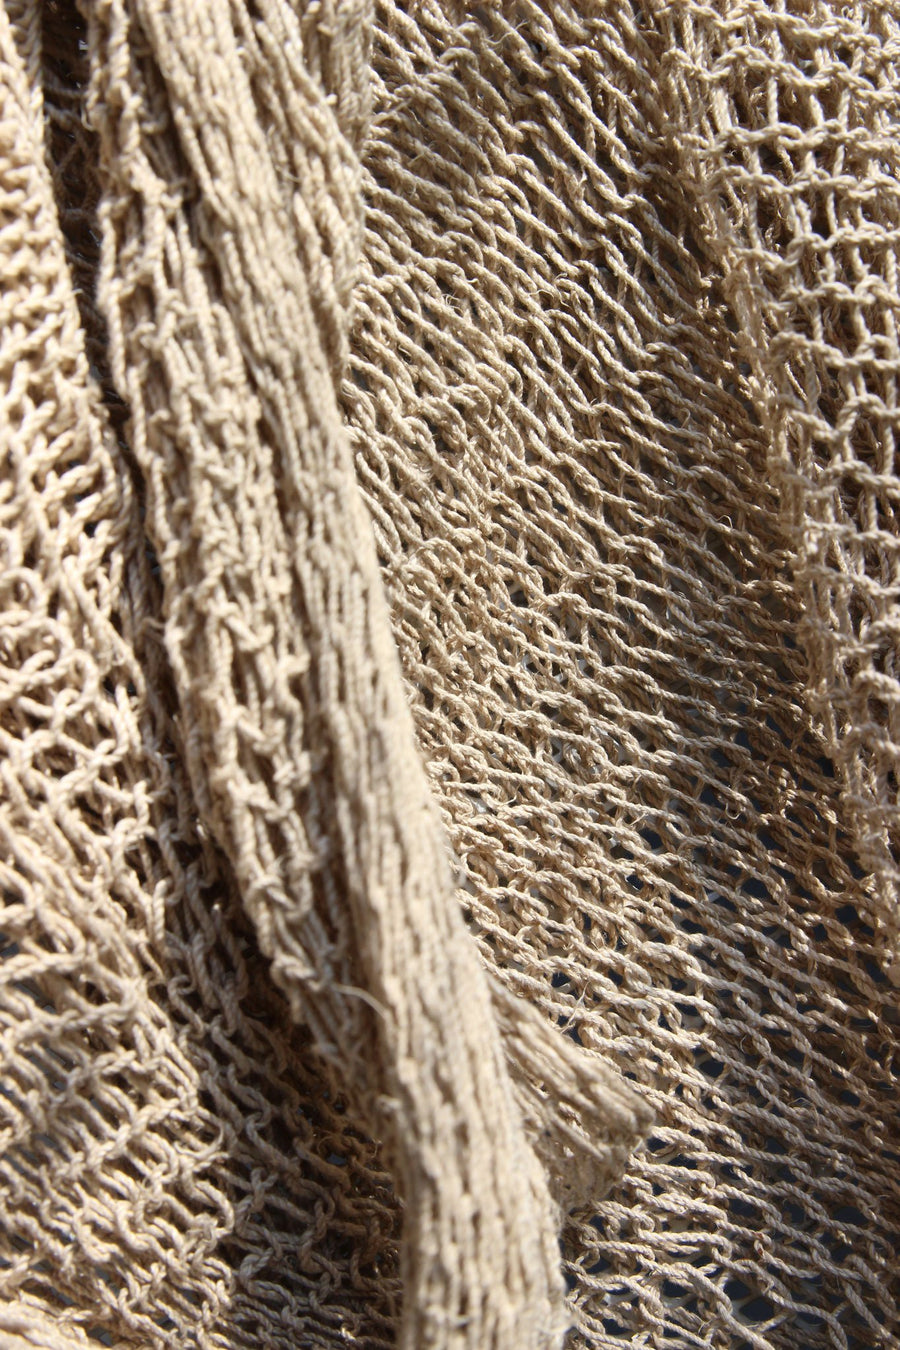 This is a detail photo of the texture of a natural-colored woven bag.